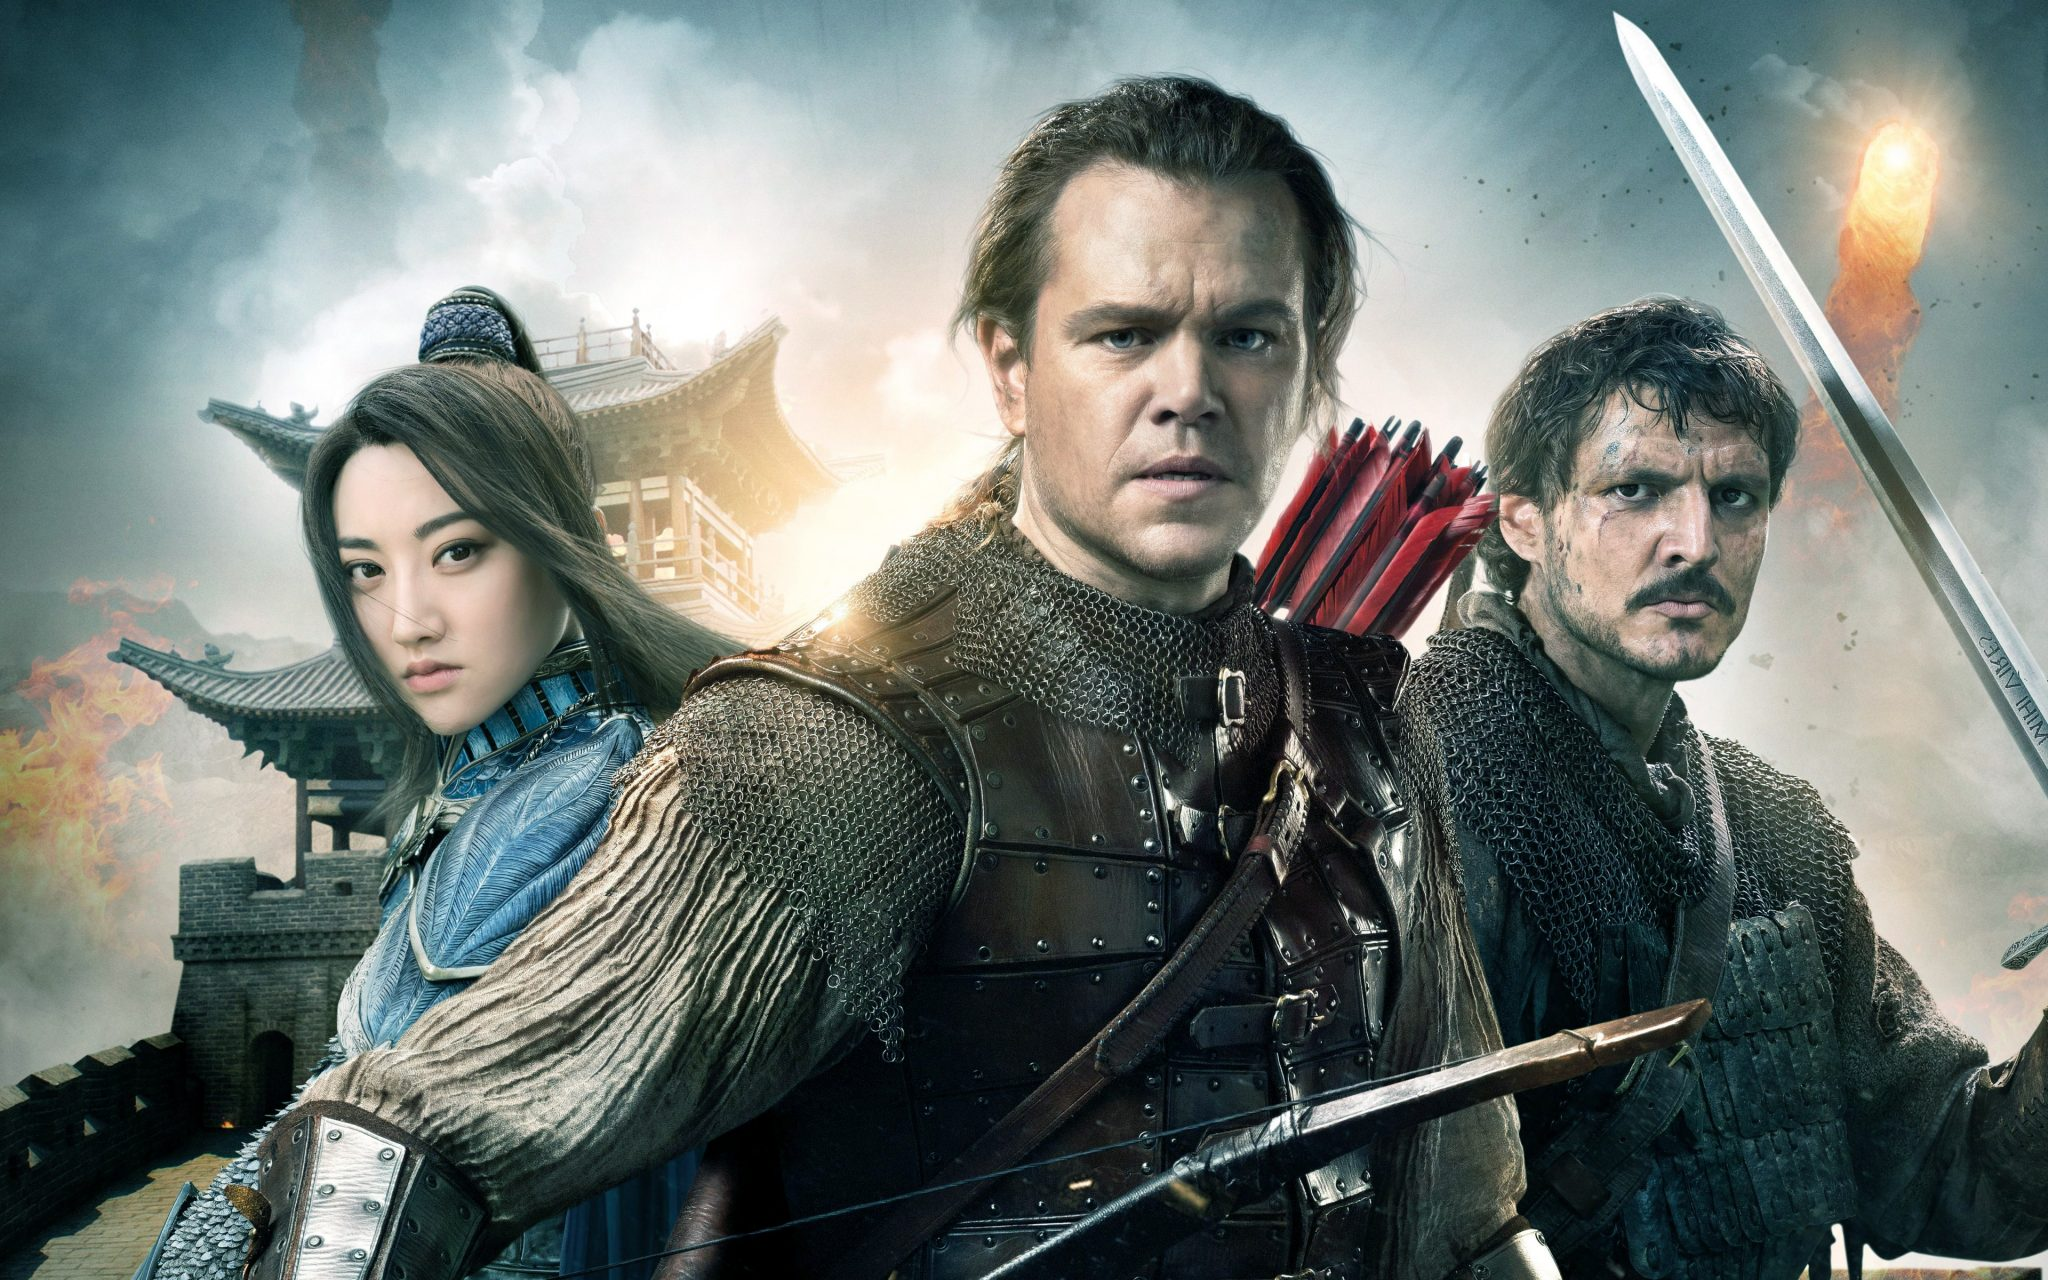 'The Great Wall' Is A Middling Mashup Of Western And Eastern Tropes